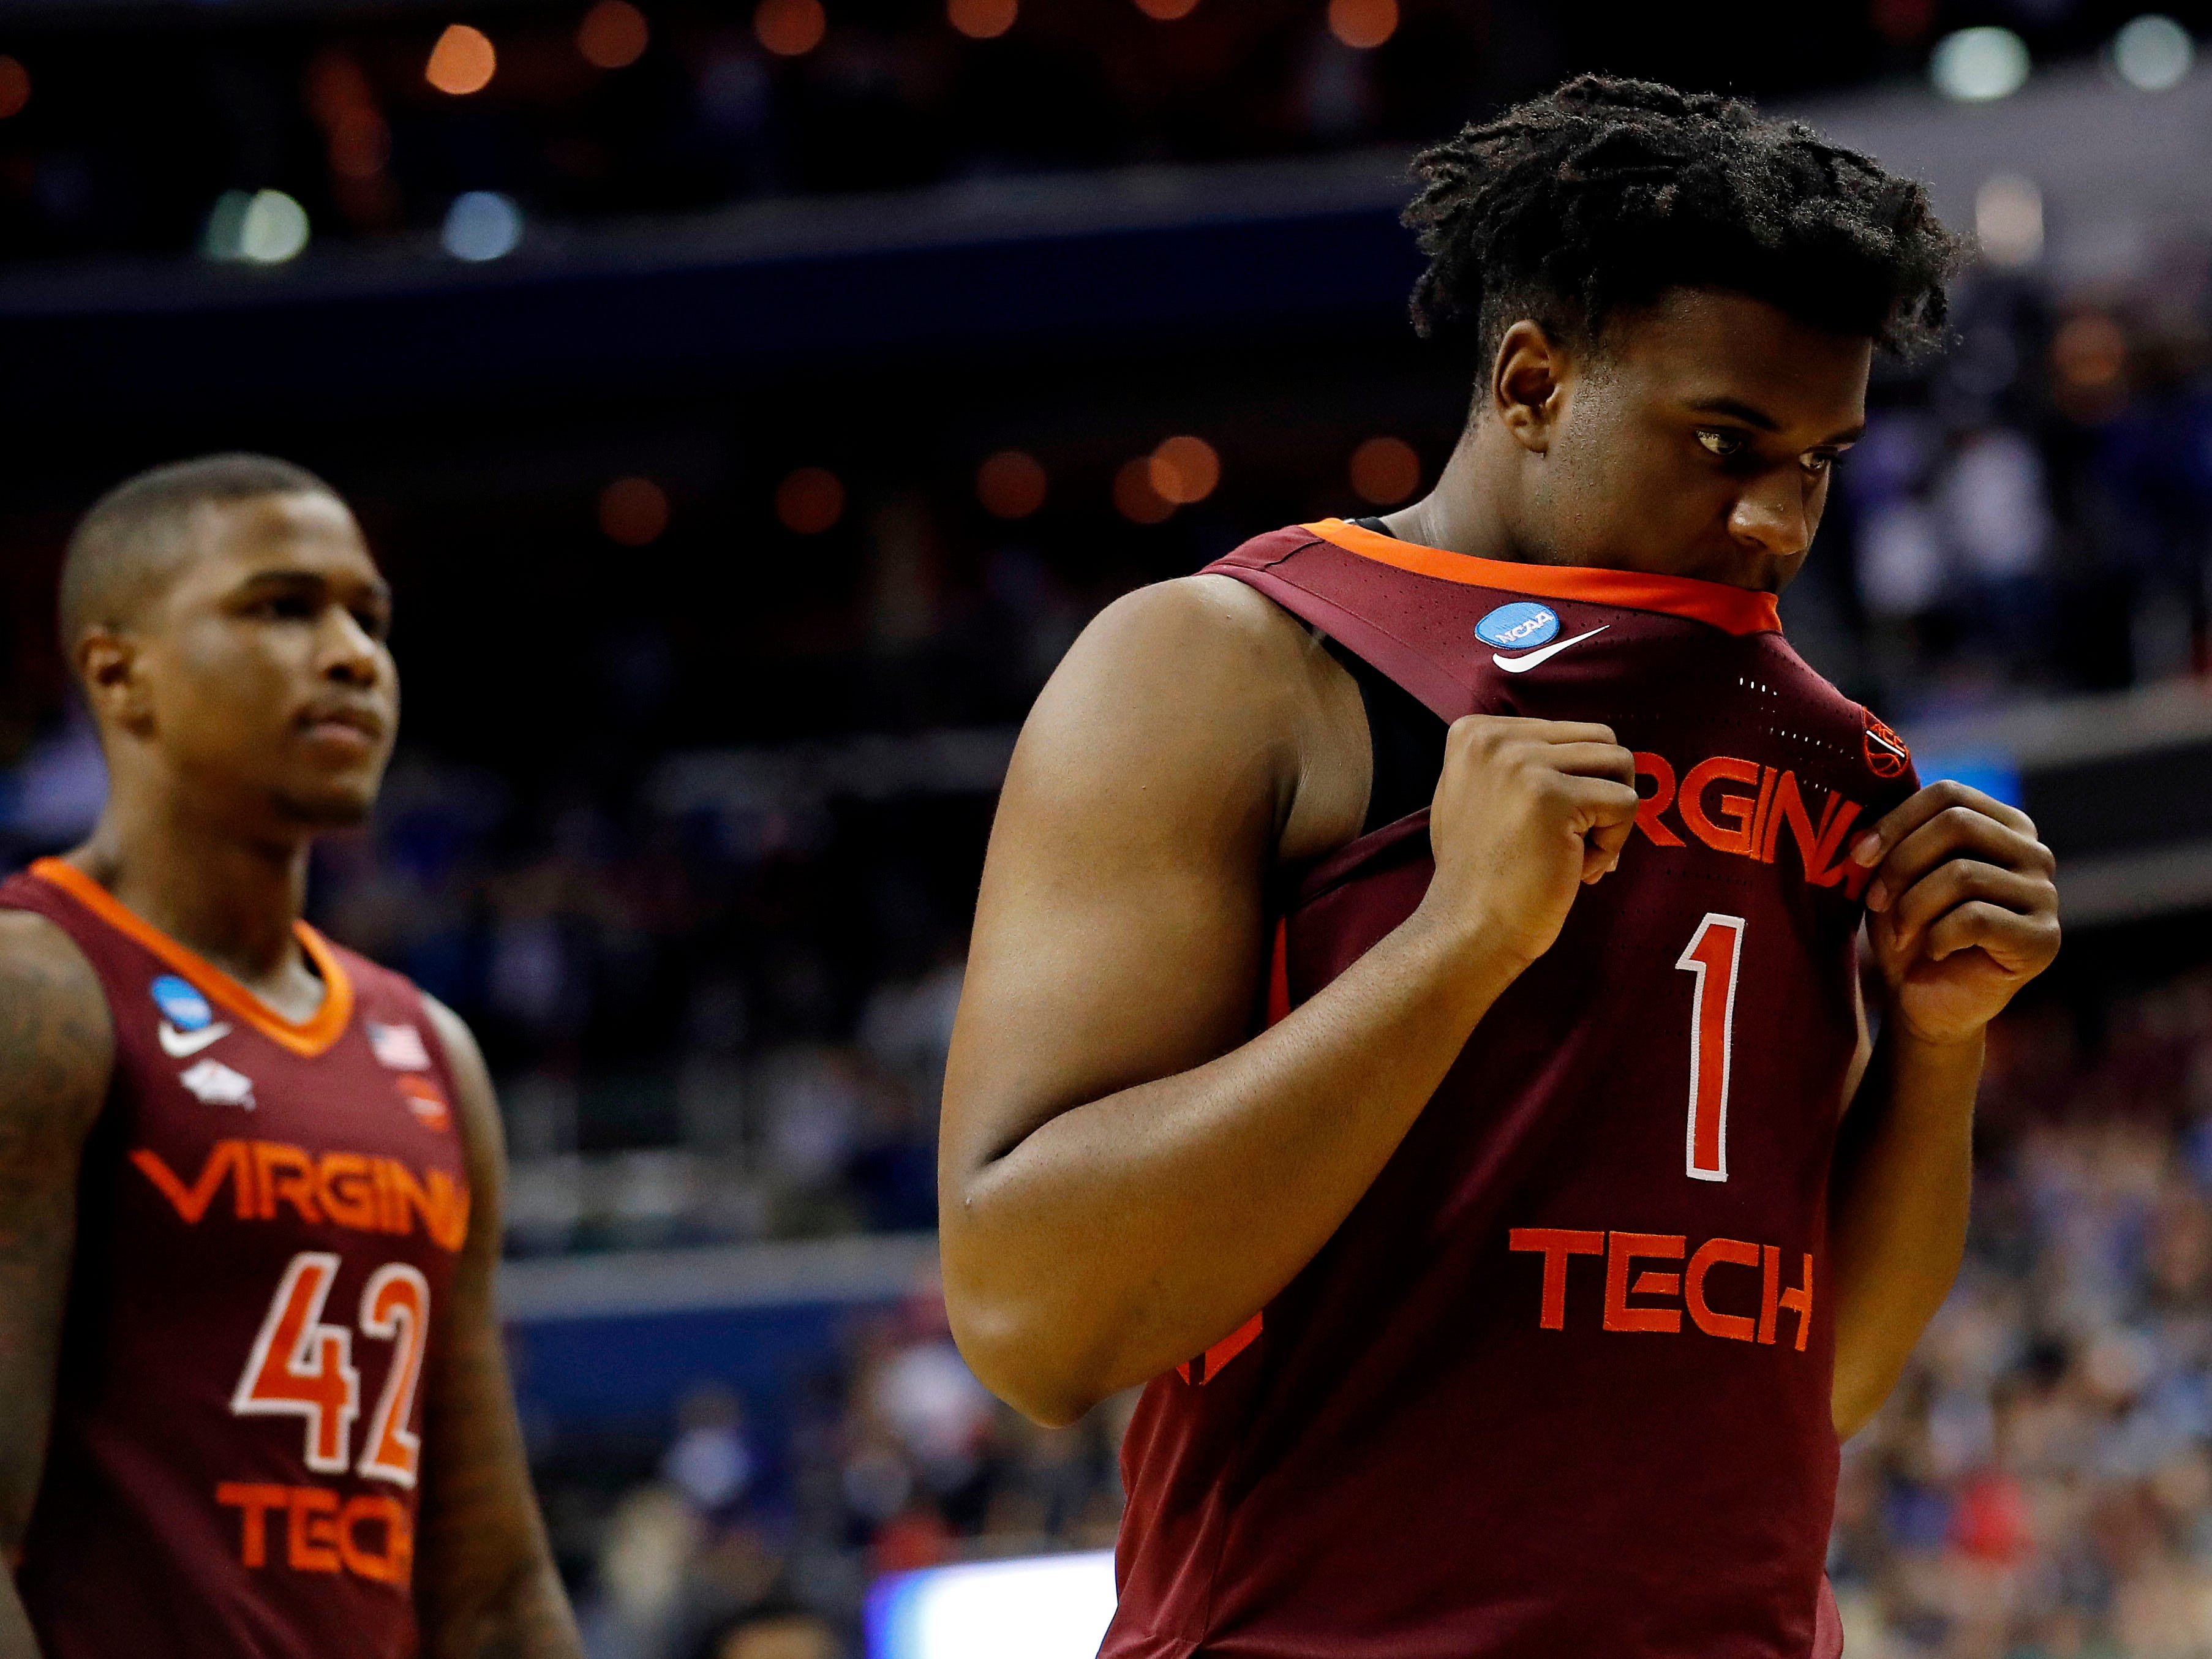 Sweet 16: No. 4 Virginia Tech loses to No. 1 Duke, 75-73.